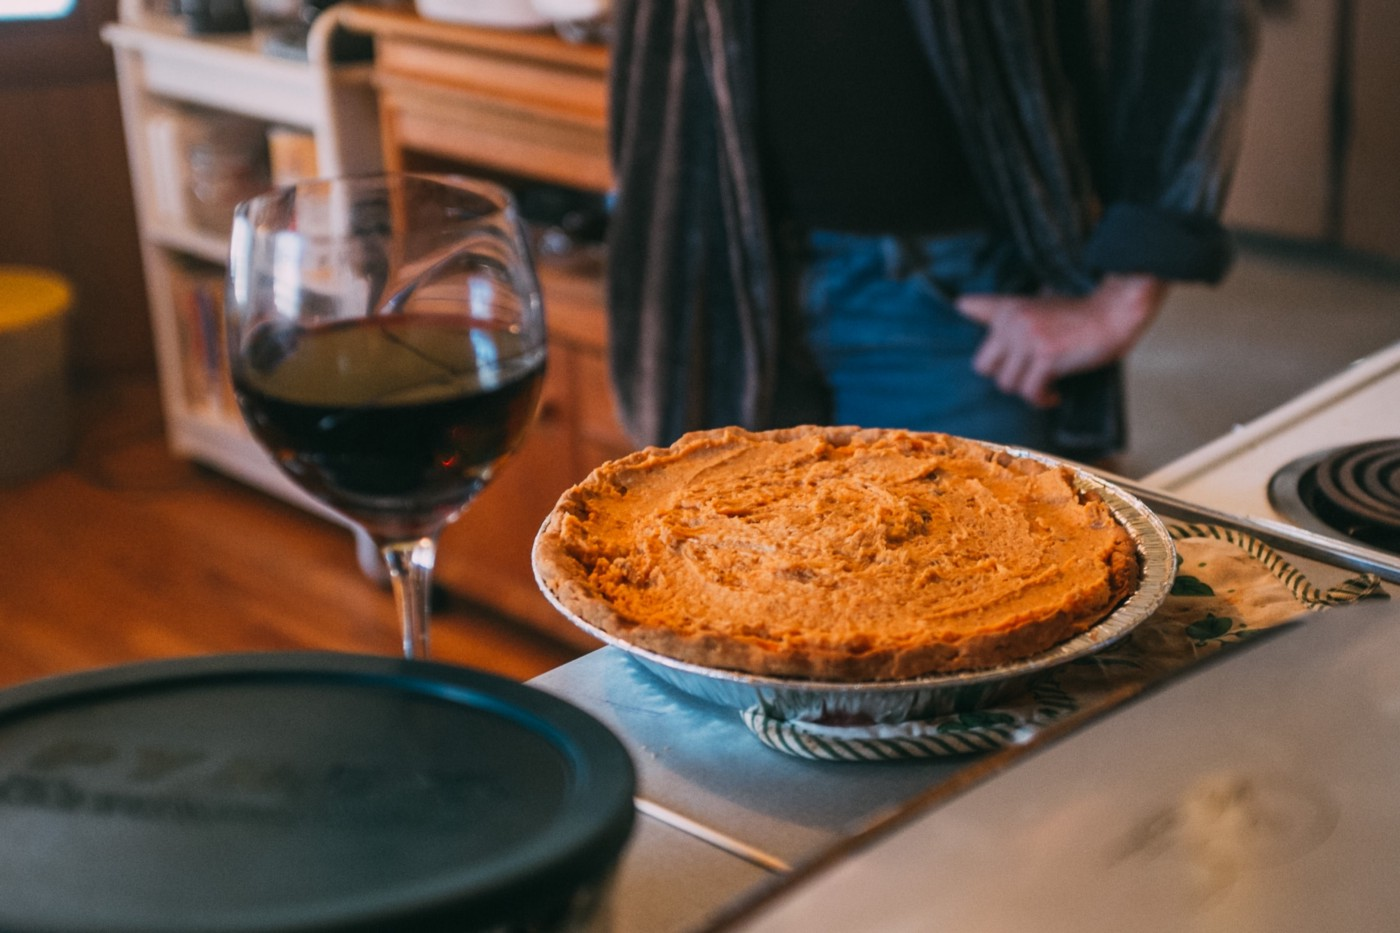 Person standing by a pumpkin pie and glass of red wine.